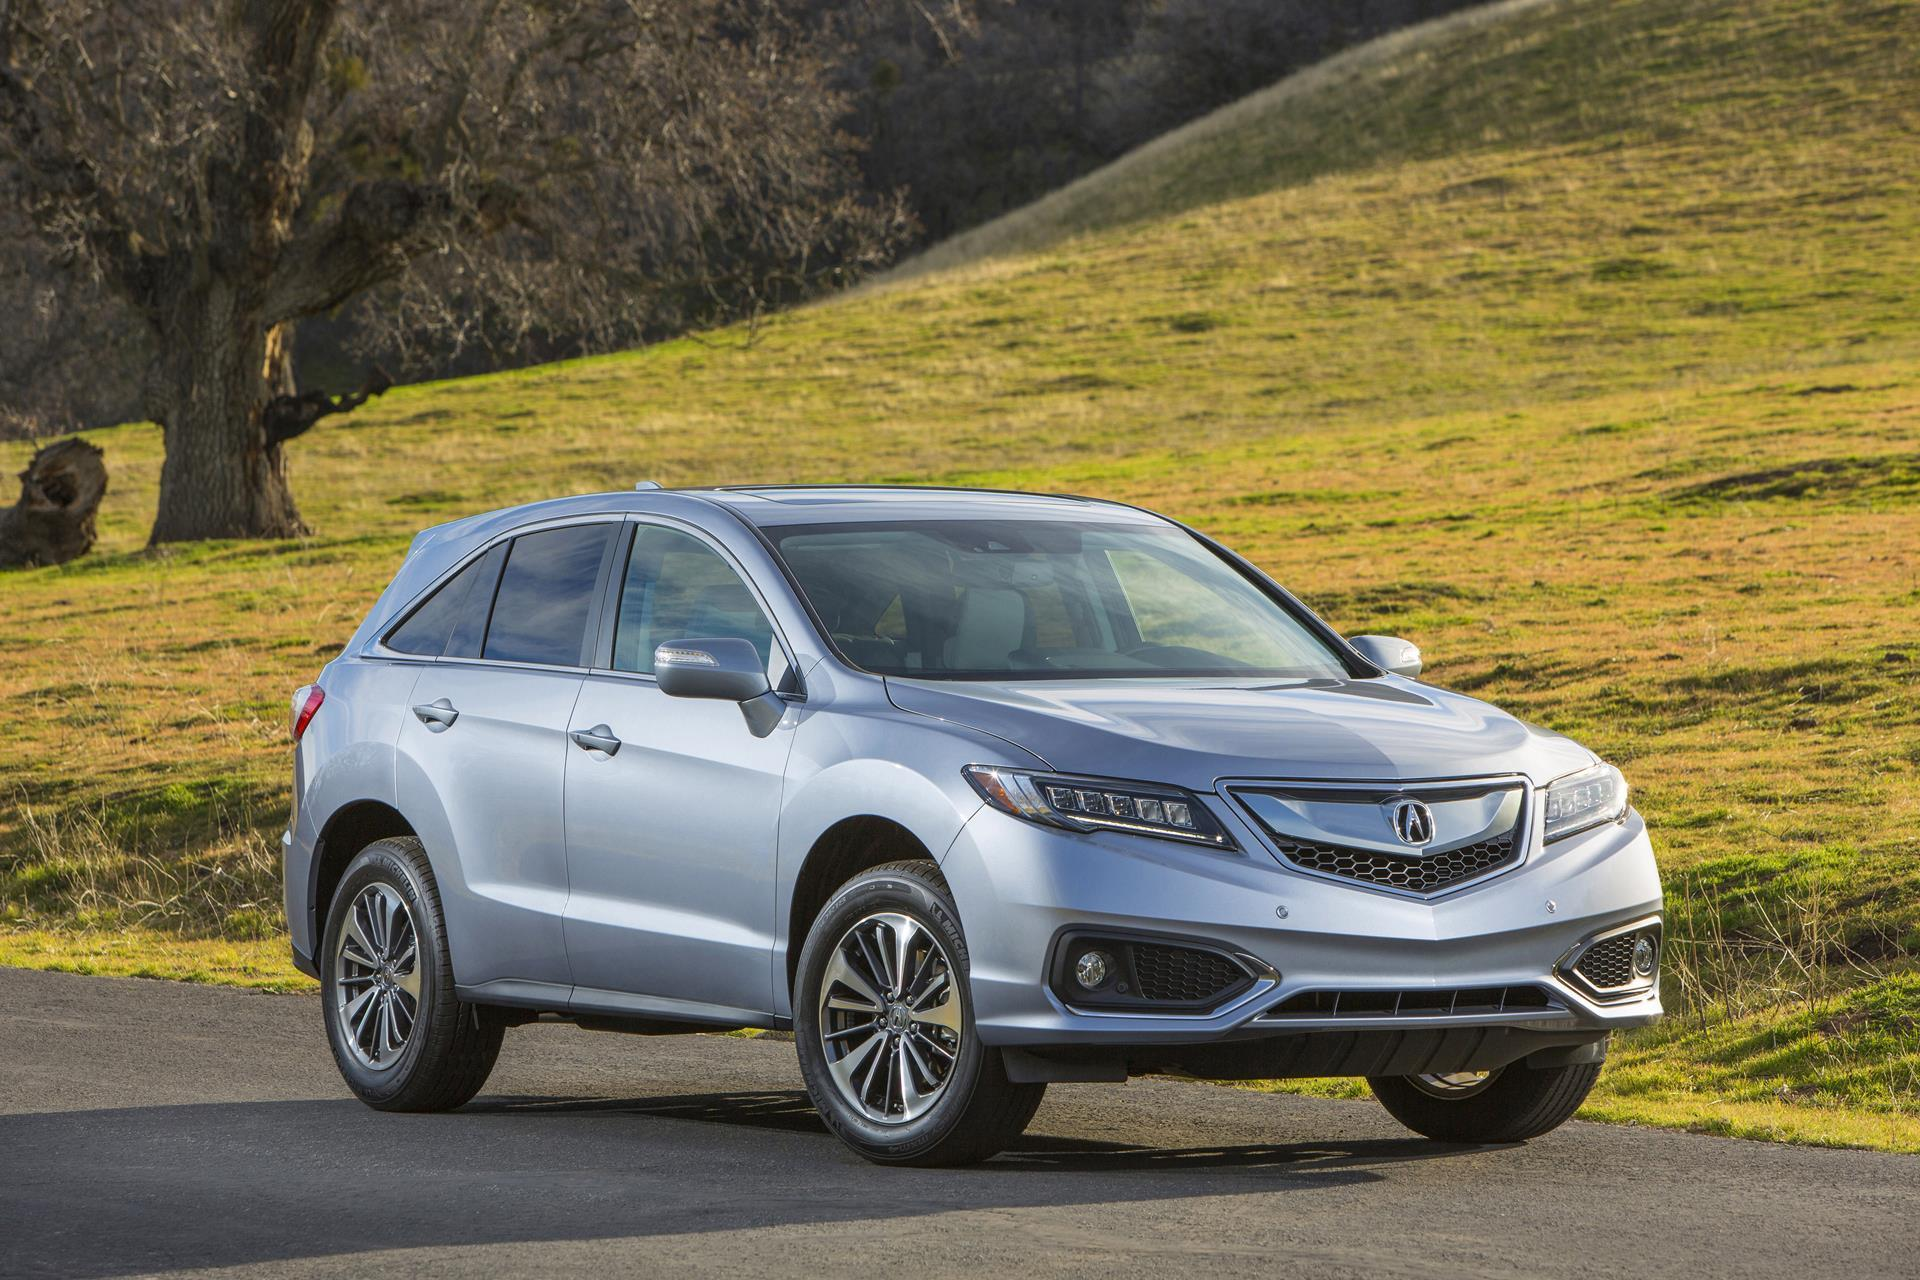 2017 acura rdx technical specifications and data engine dimensions and mechanical details. Black Bedroom Furniture Sets. Home Design Ideas